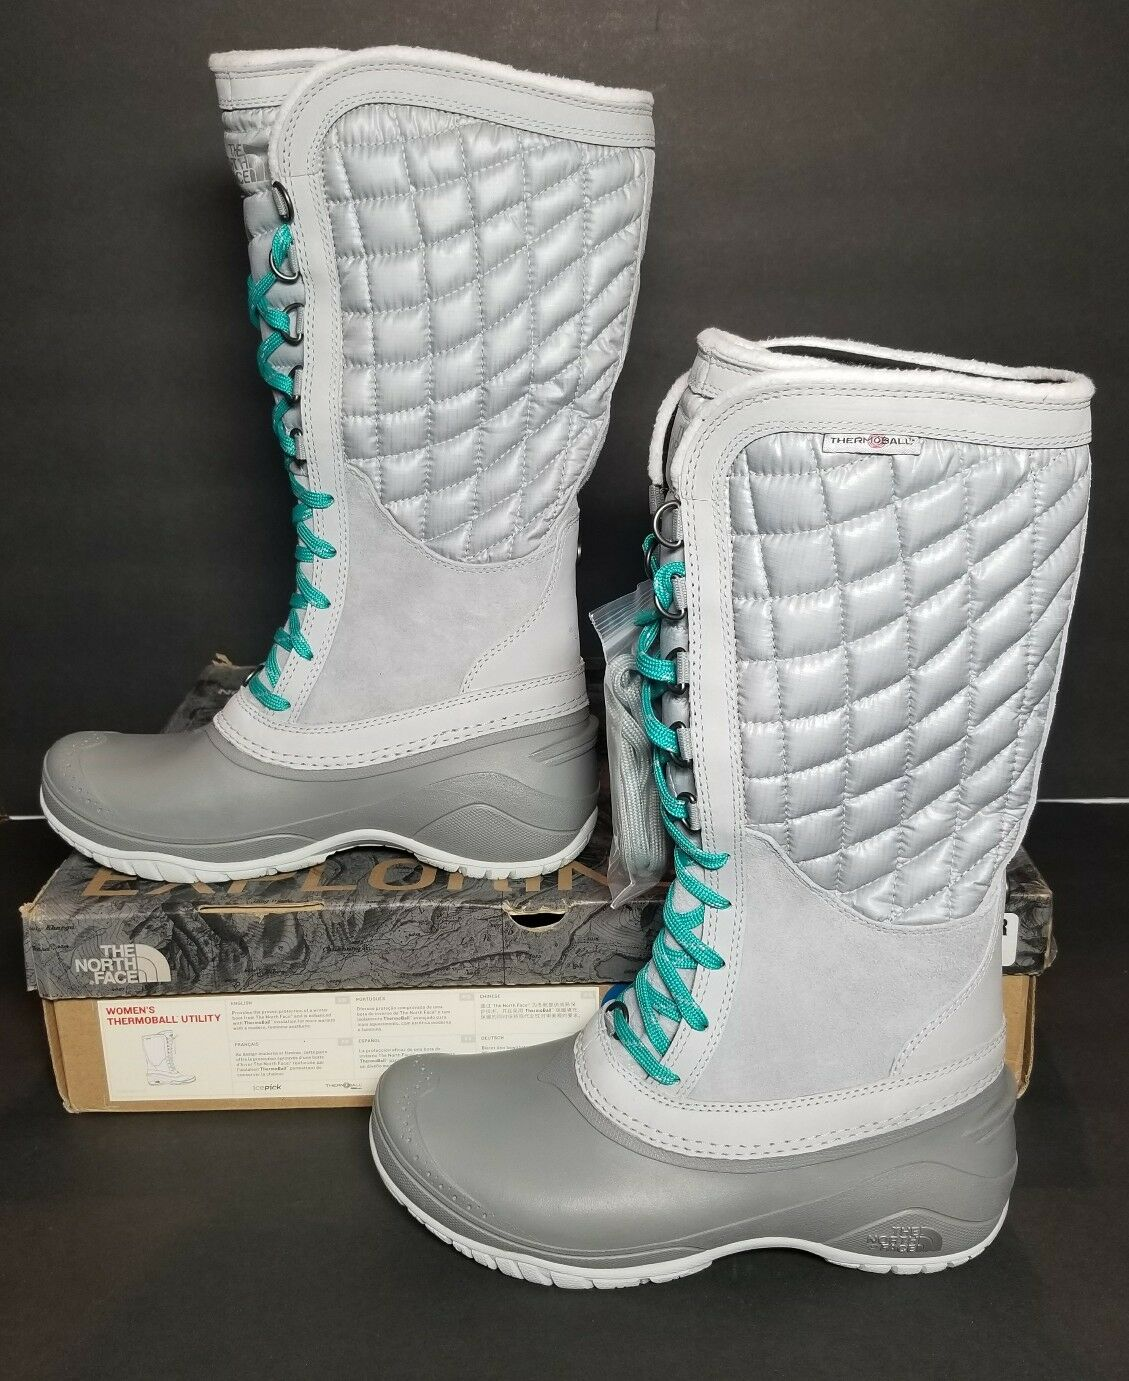 NORTH FACE WOMEN'S THERMOBALL UTILITY 6 HIGH RISE Stiefel SIZE 6 UTILITY & 8 NEW / BOX GREY d6574c